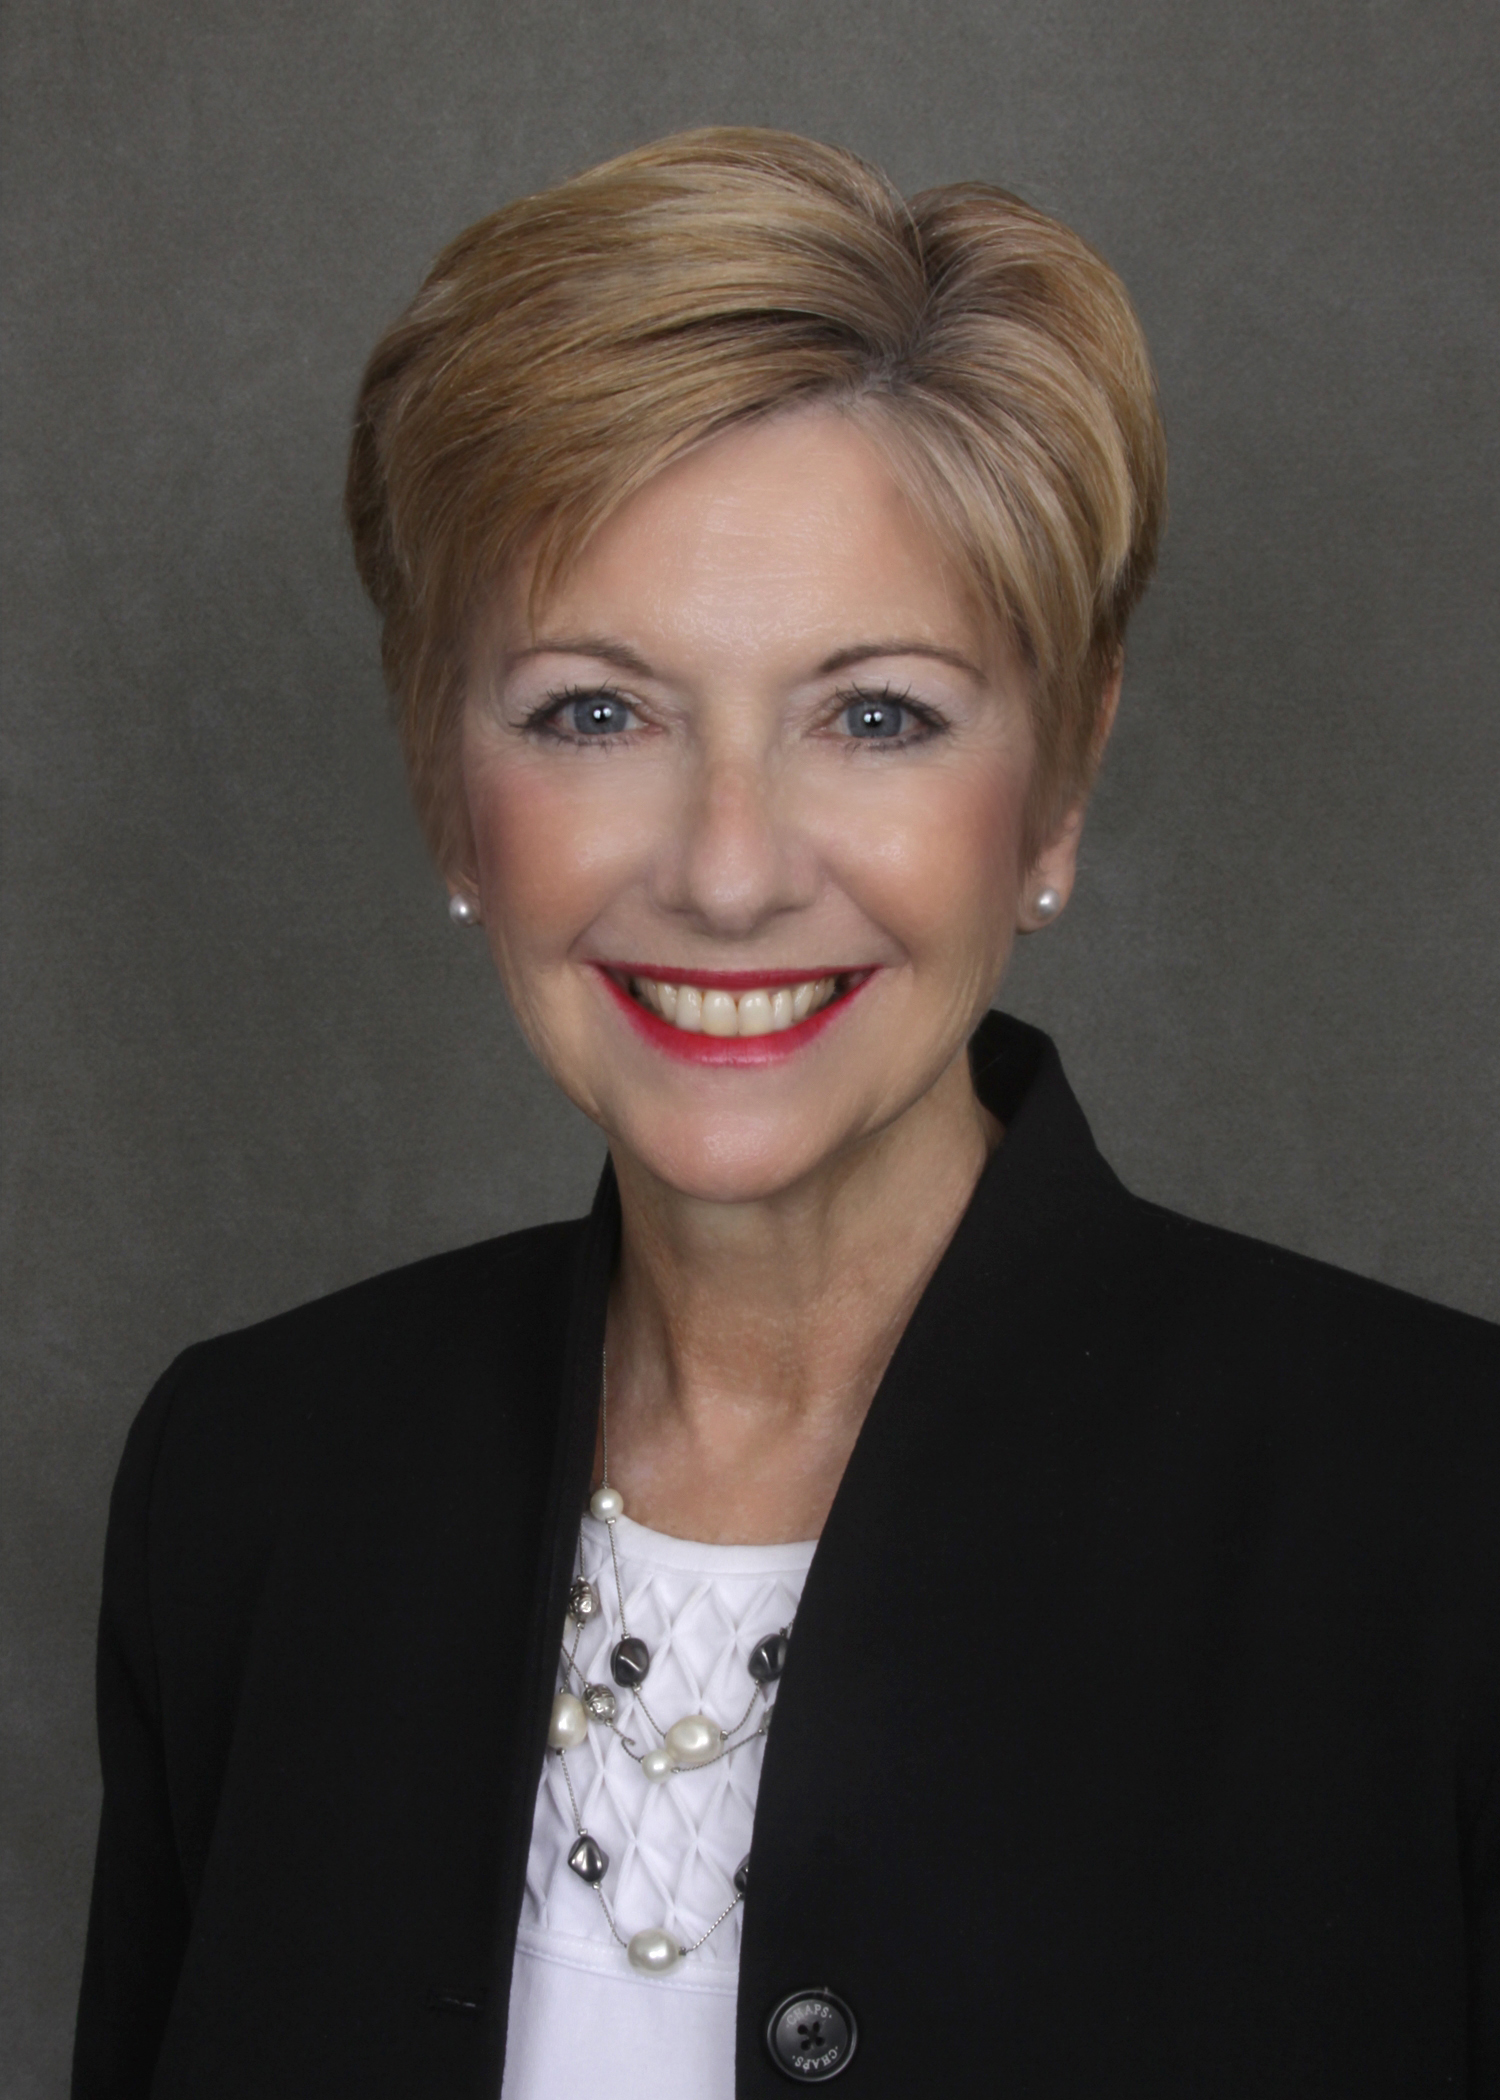 Townhomes >> Angela Peacock, Real Estate Agent - Sparta, NJ - Coldwell Banker Residential Brokerage